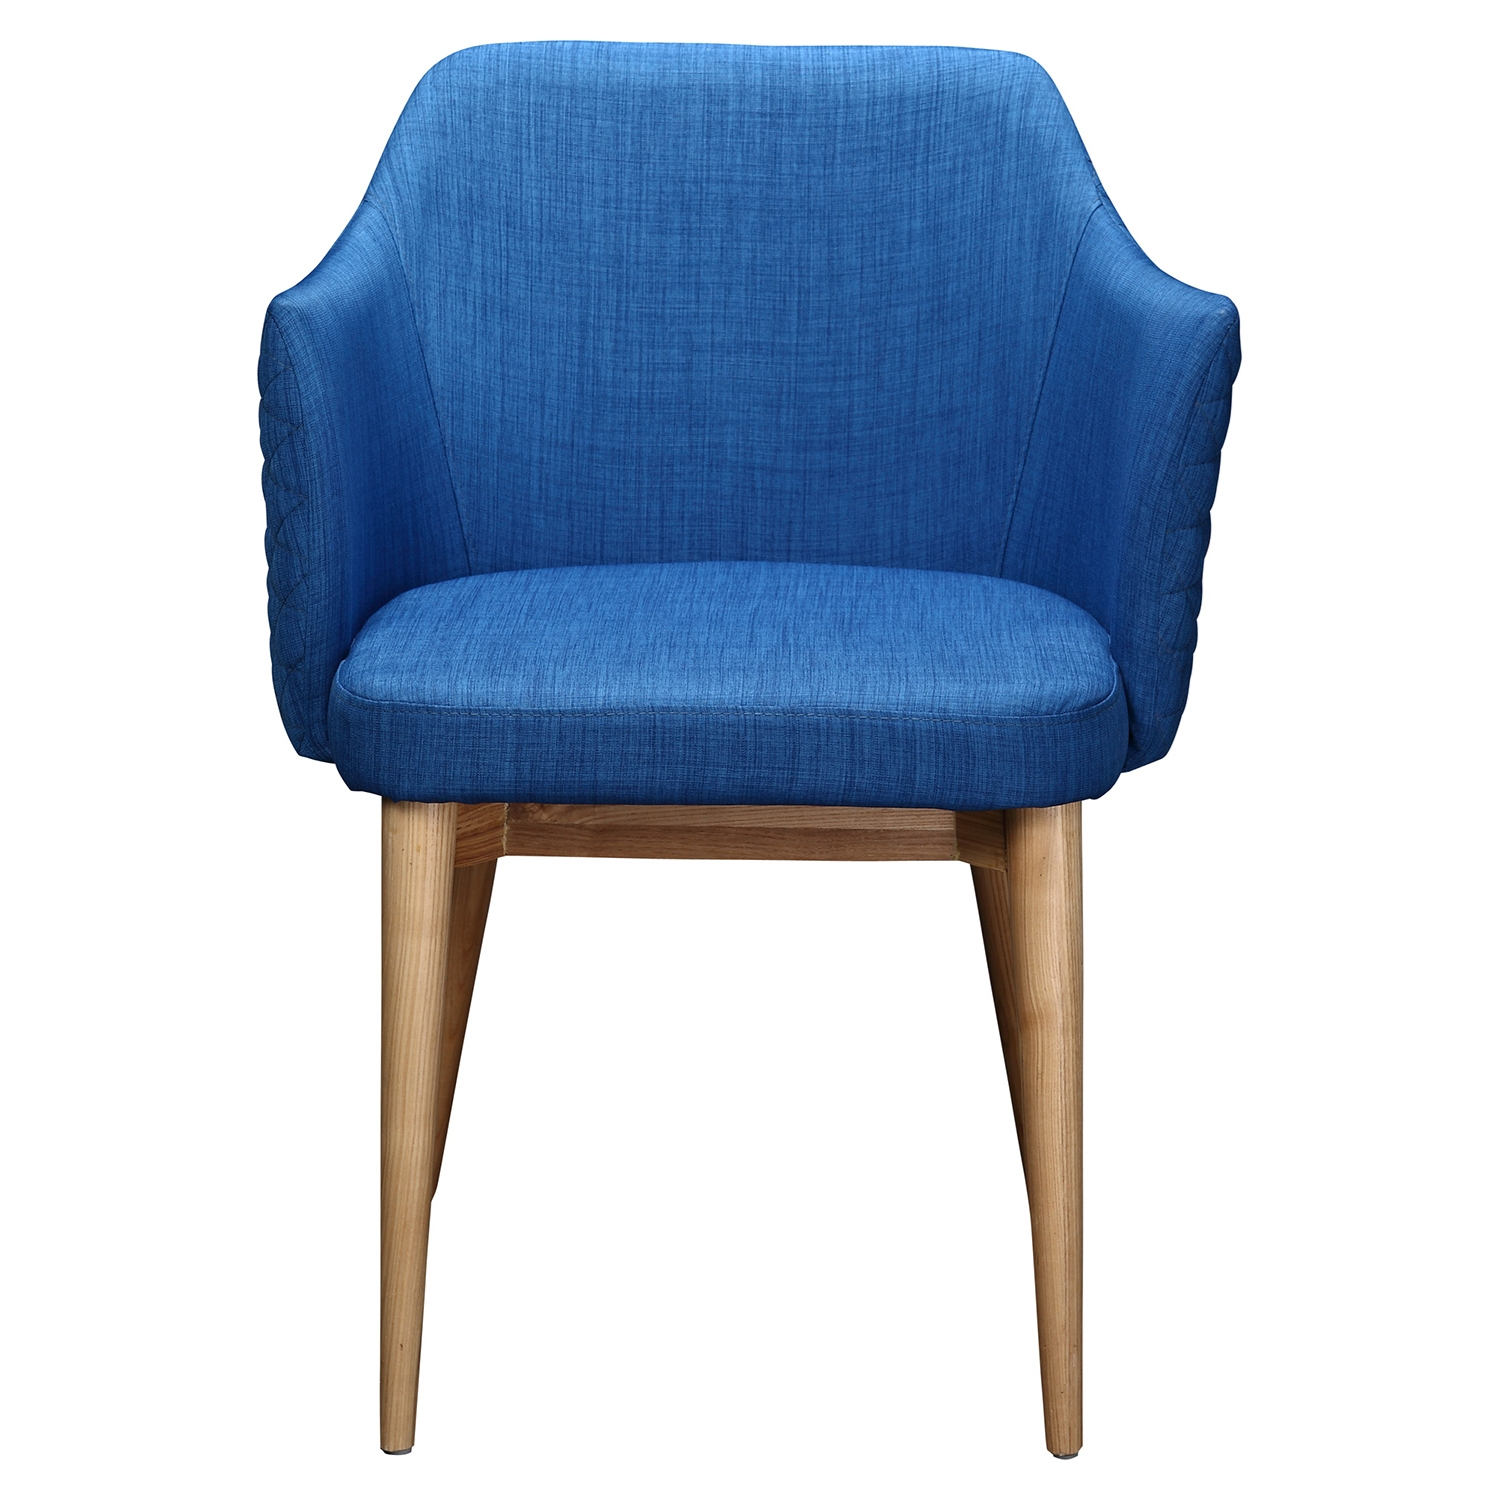 Glen Armchair - Blue - MOES-EH-1097-26